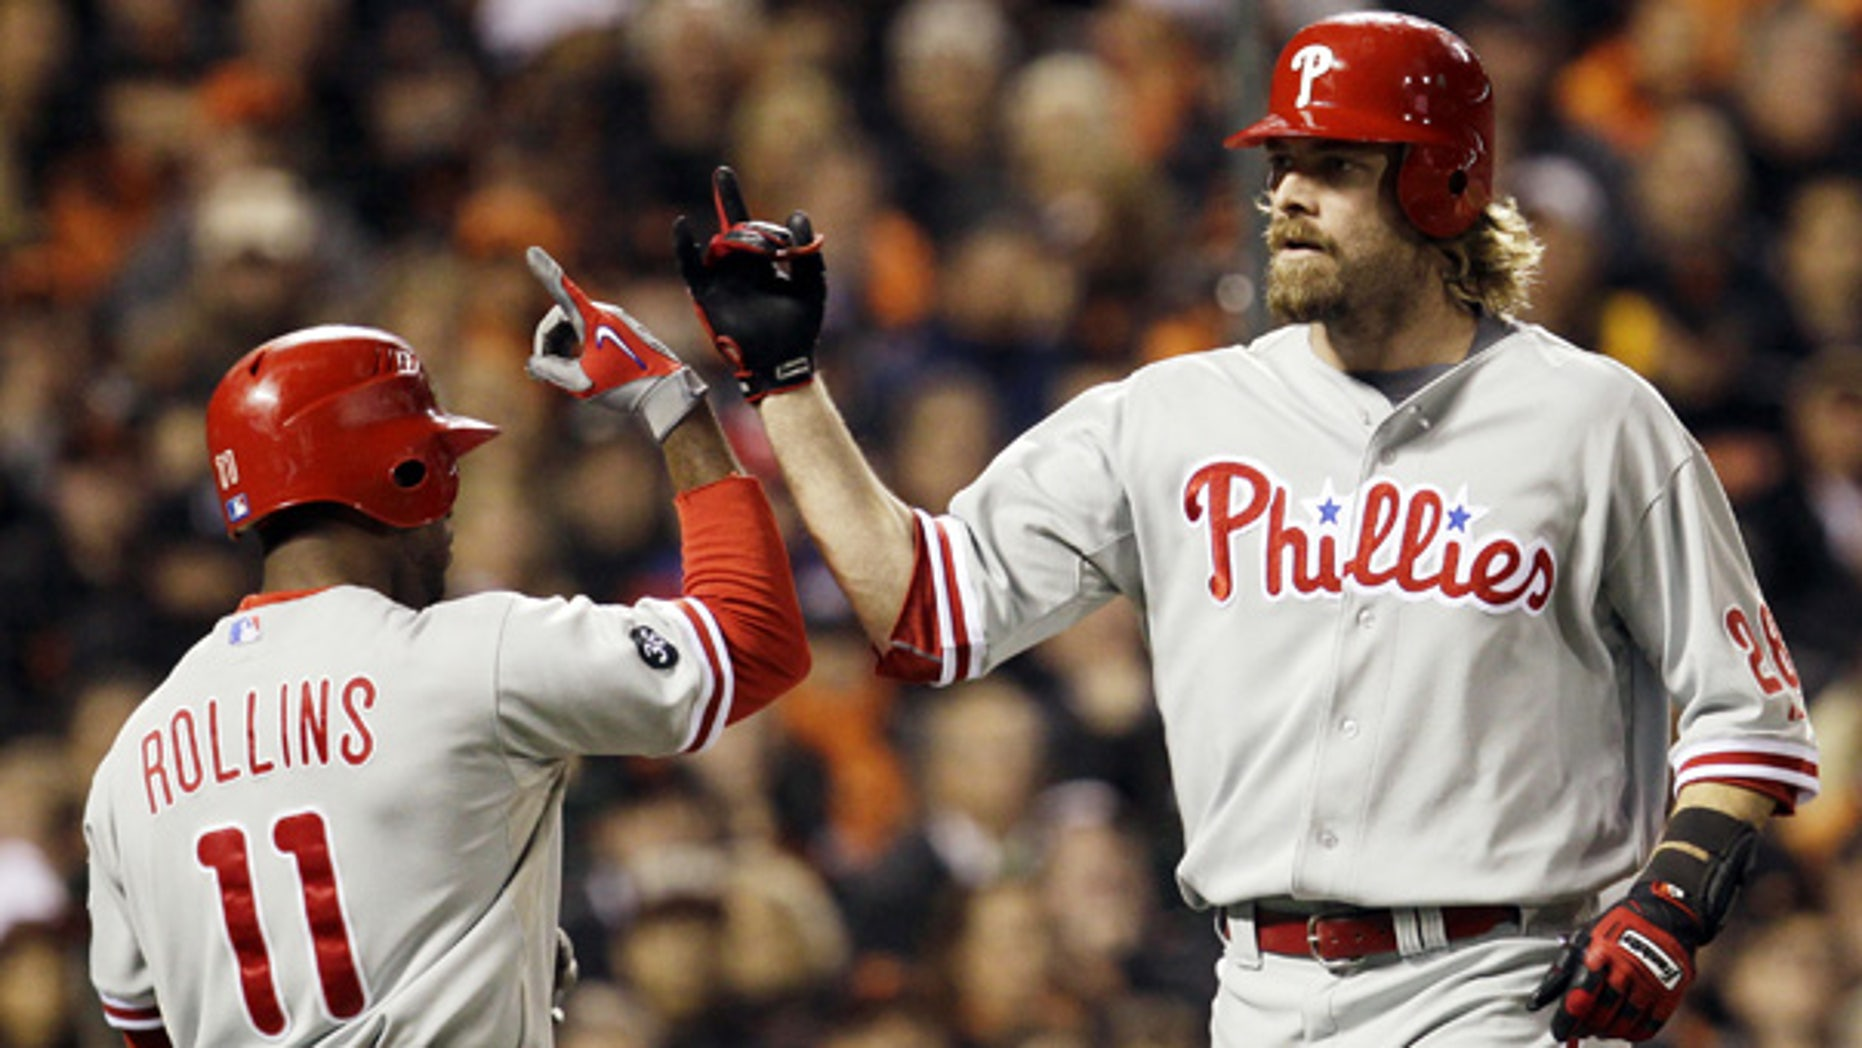 Oct. 21: Philadelphia Phillies' Jayson Werth, right, is congratulated by Jimmy Rollins after Werth hit a home run during the ninth inning in San Francisco.